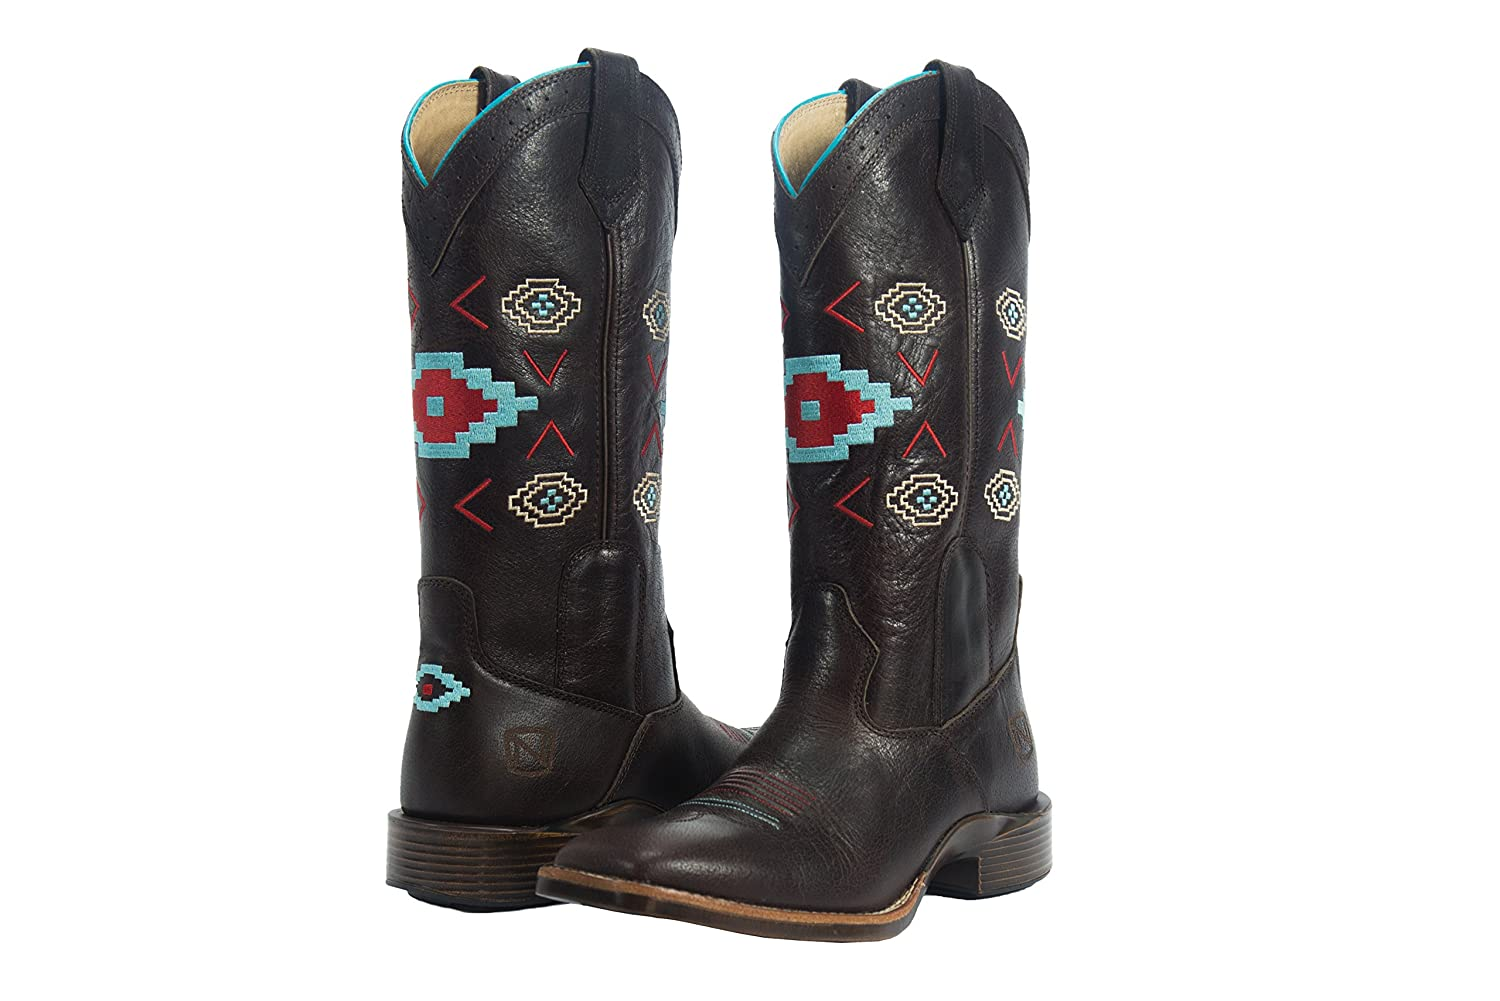 ノーブルOutfitters Western BootsレディースAll Around Aztec Embroidery 66026 6 Vintage Brown B01FHUG5OW